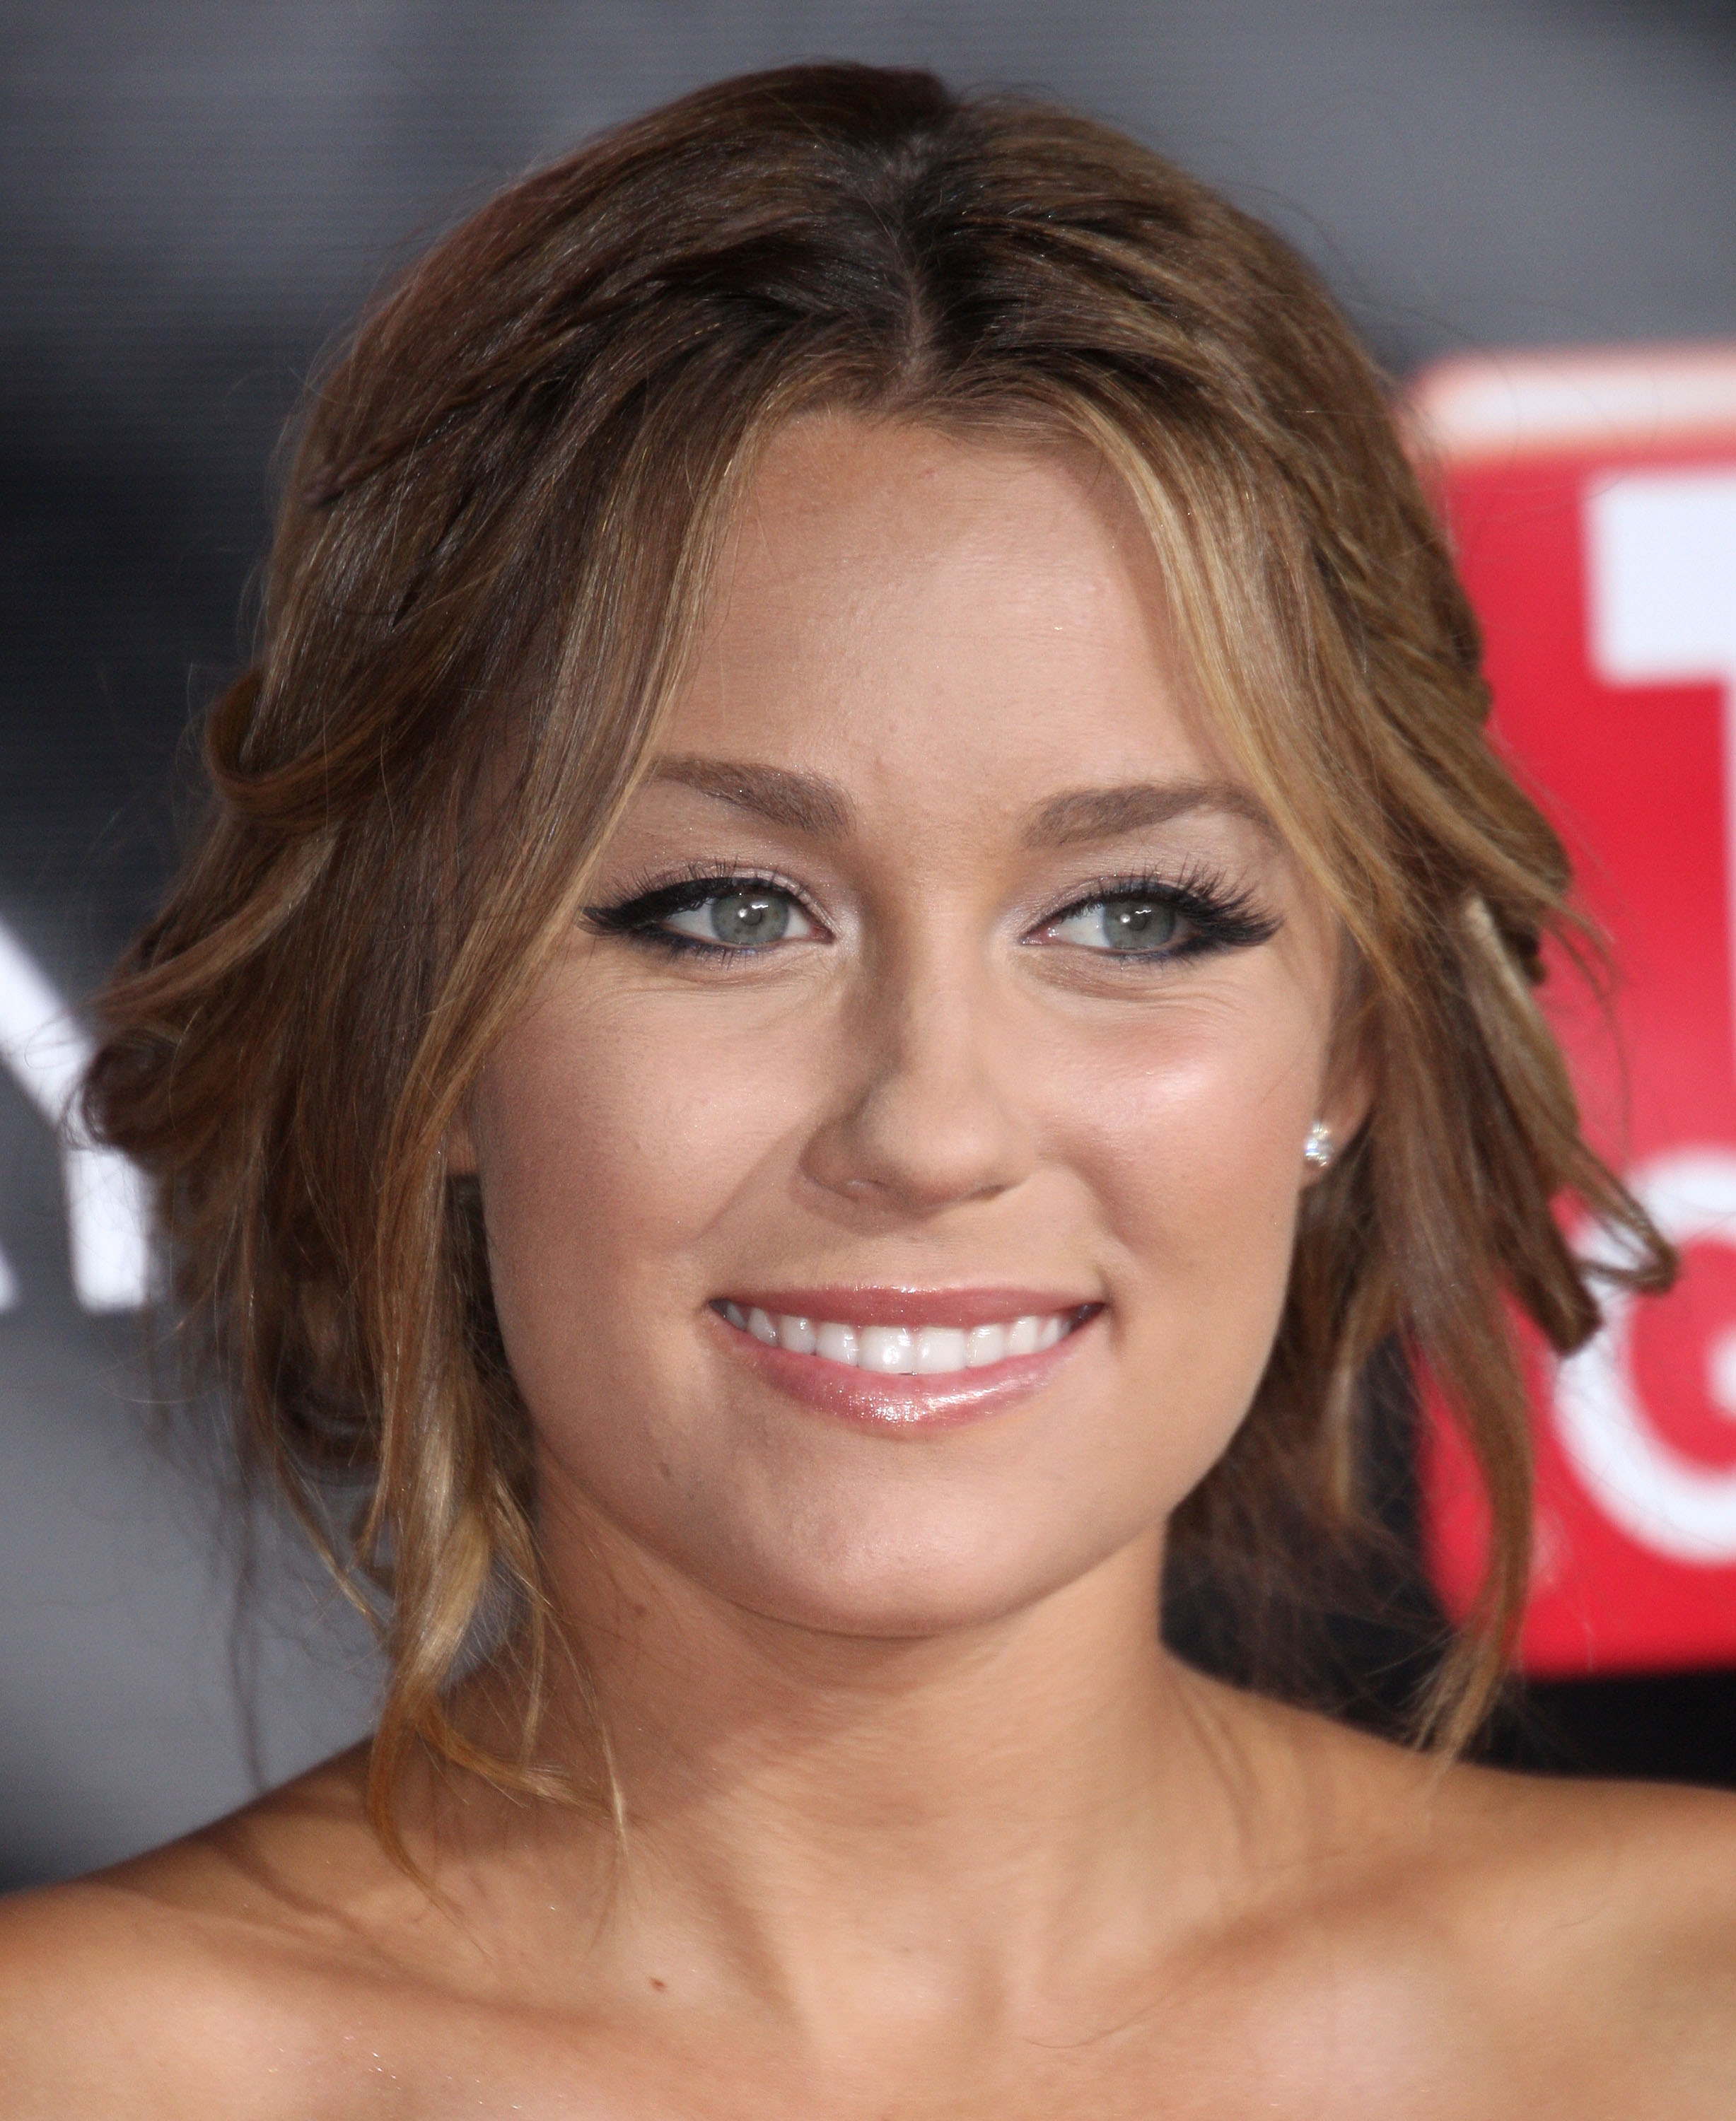 98923_Celebutopia-Lauren_Conrad-TV_Guide5s_Sixth_Annual_Emmy_Awards_After_Party-01_122_1118lo.jpg